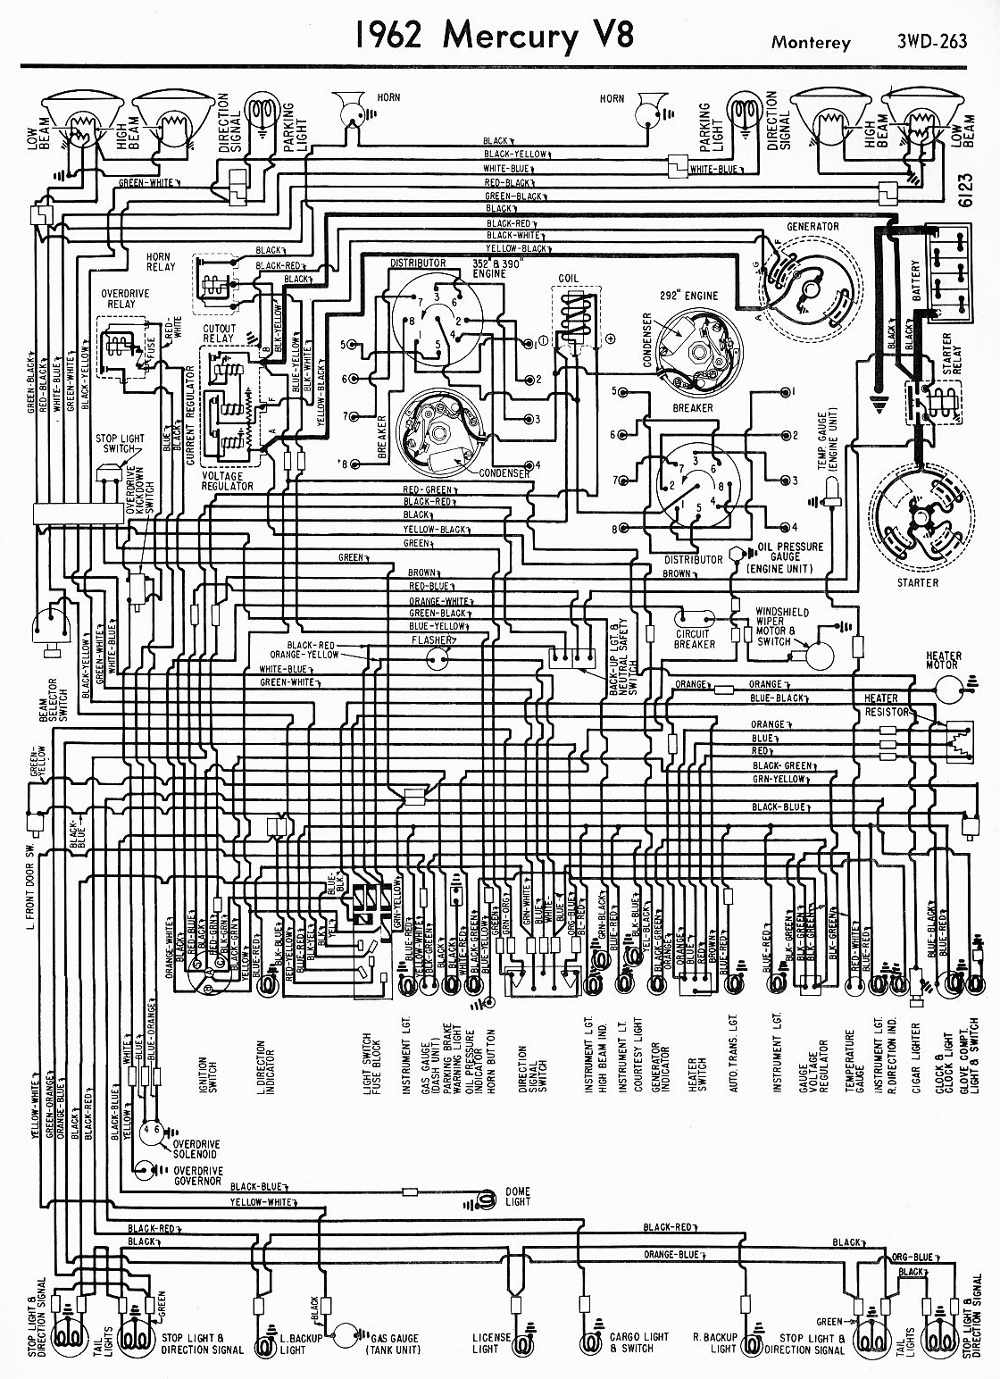 1967 mercury monterey wiring diagram layout wiring diagrams \u2022 1958 mercury montclair mercury car manuals wiring diagrams pdf fault codes rh automotive manuals net 1966 mercury monterey 1967